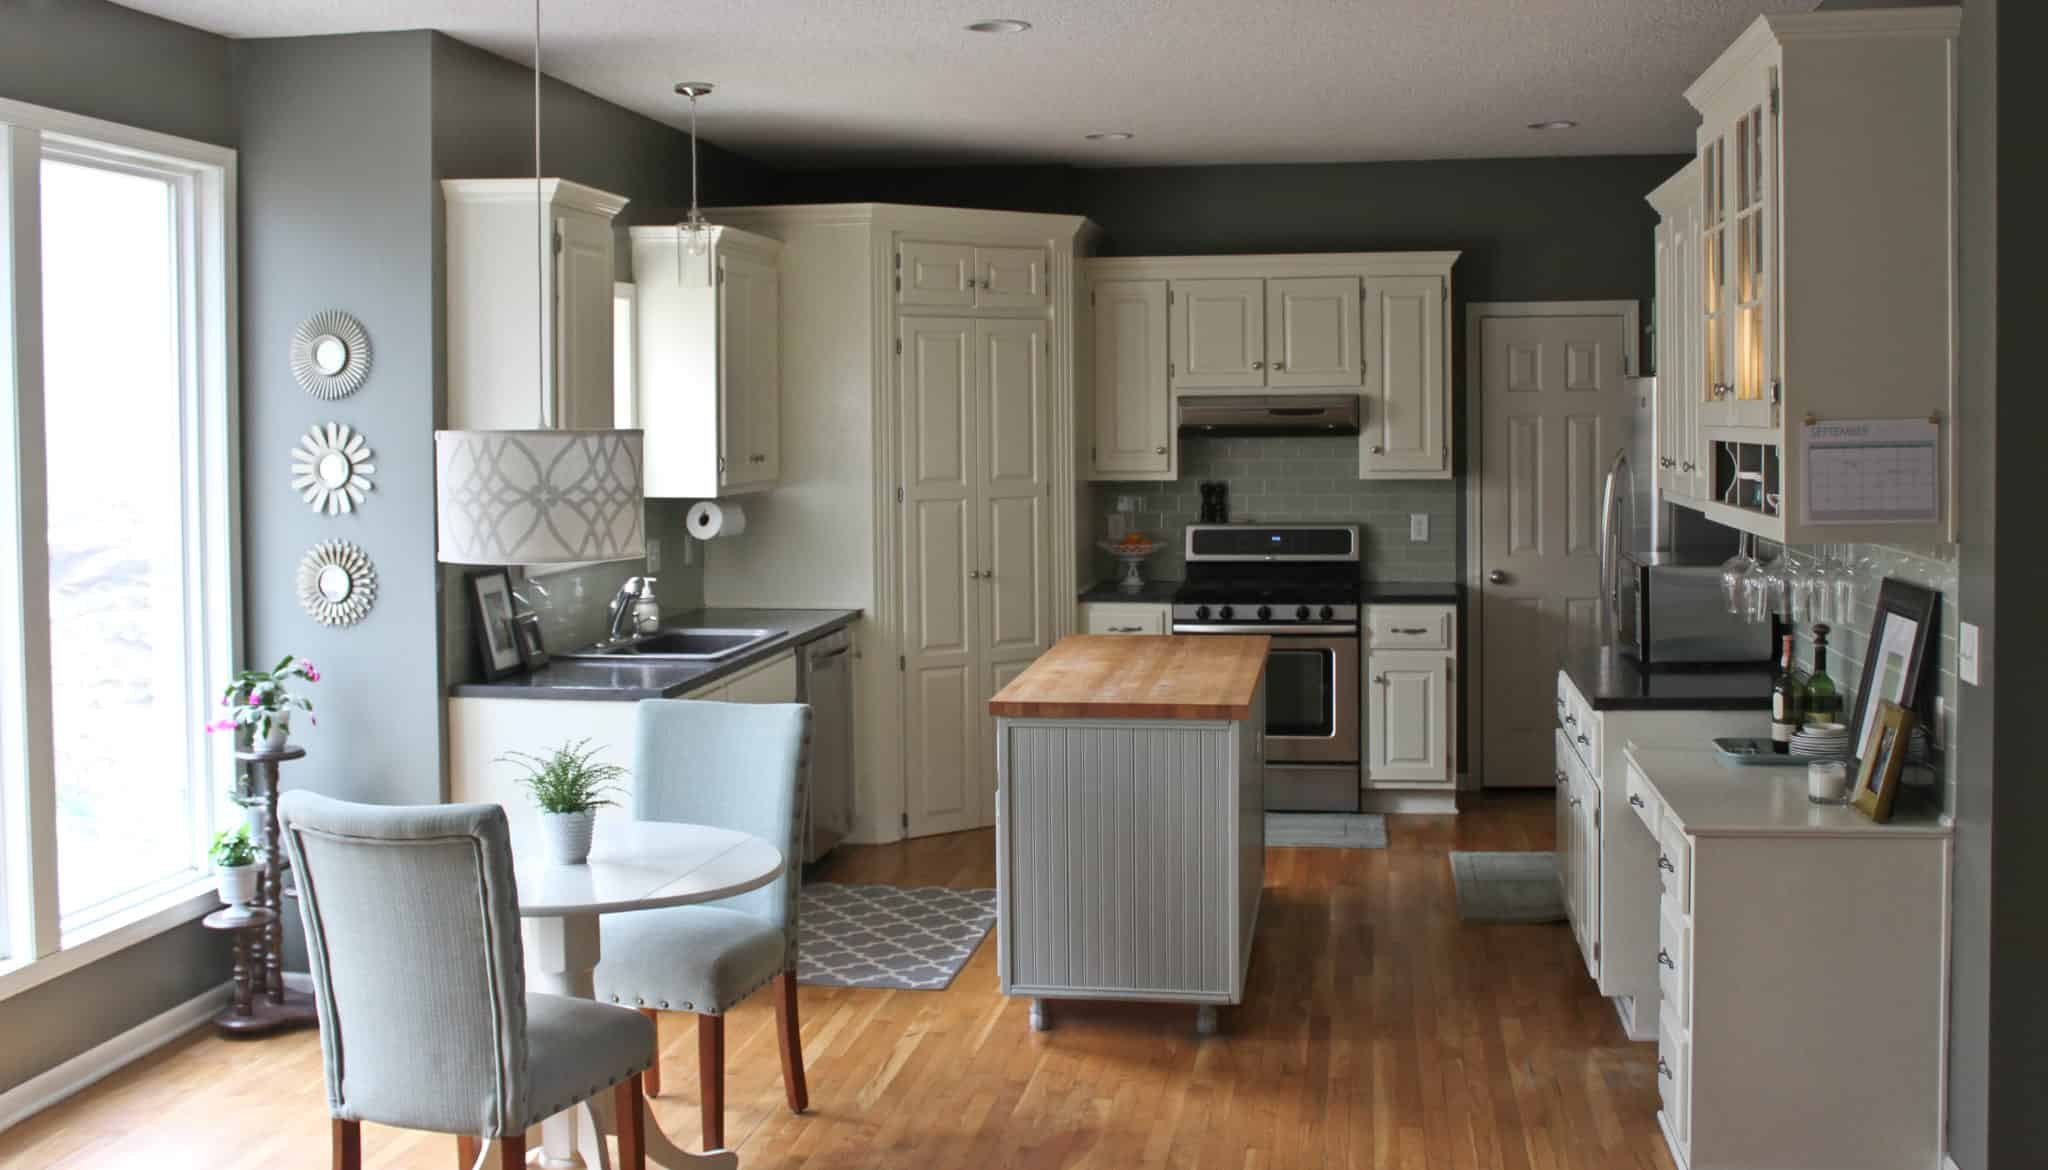 awesome Free Kitchen Remodel Contest #6: $500 Diy Kitchen Remodel